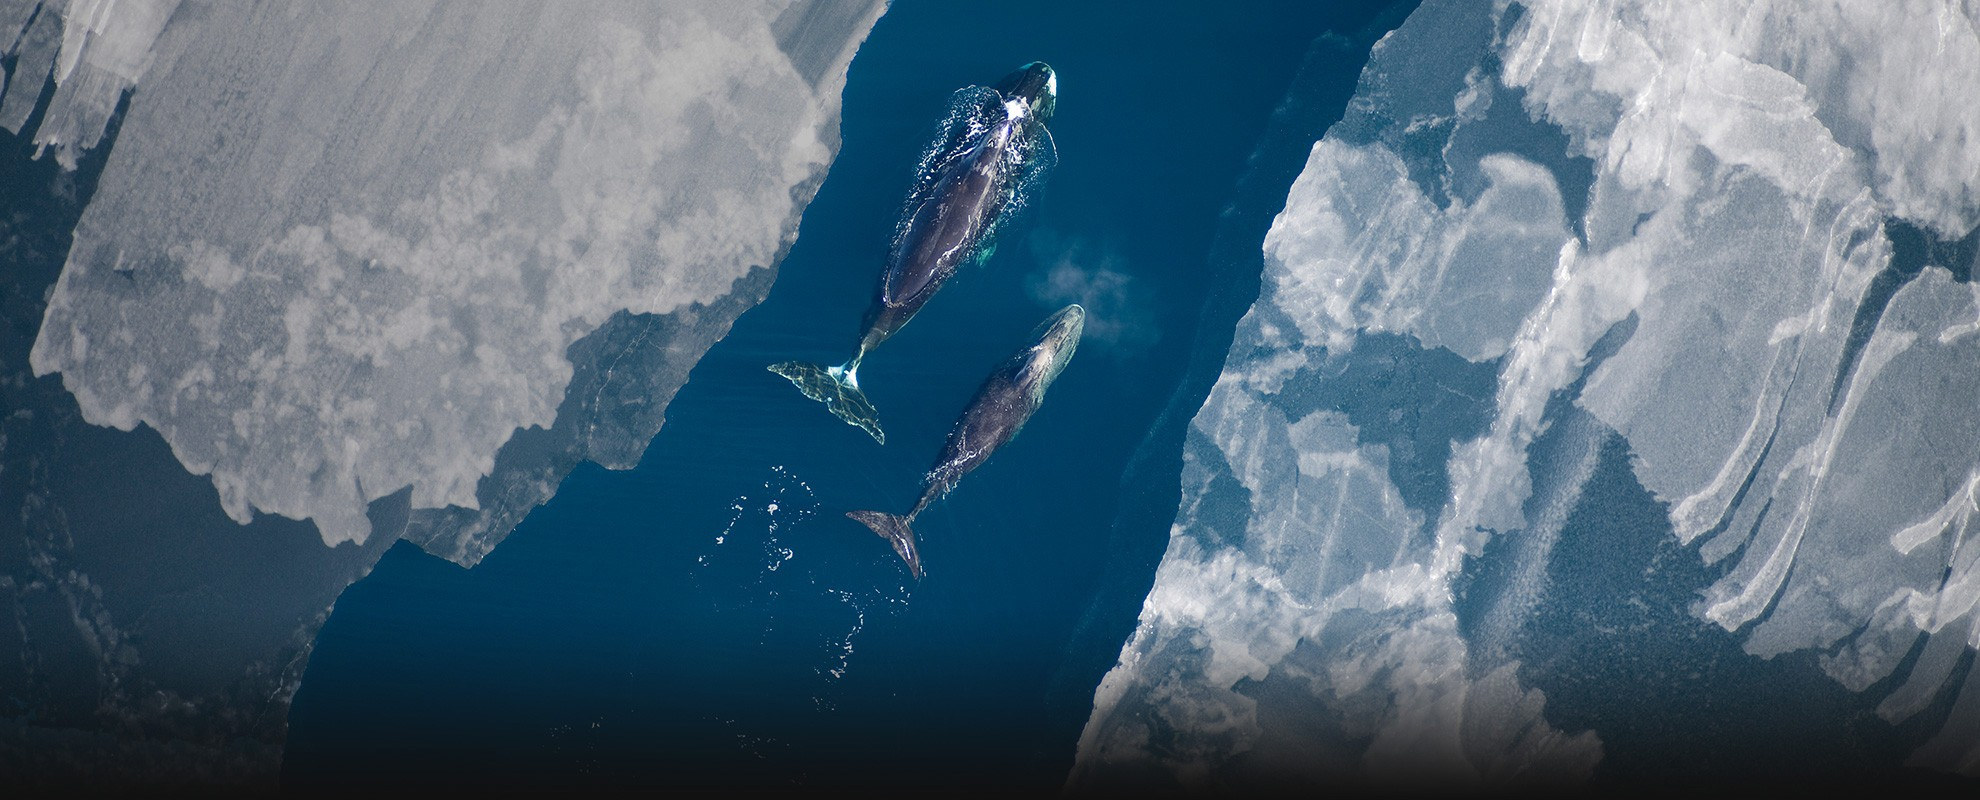 Bowhead whales in the Arctic.